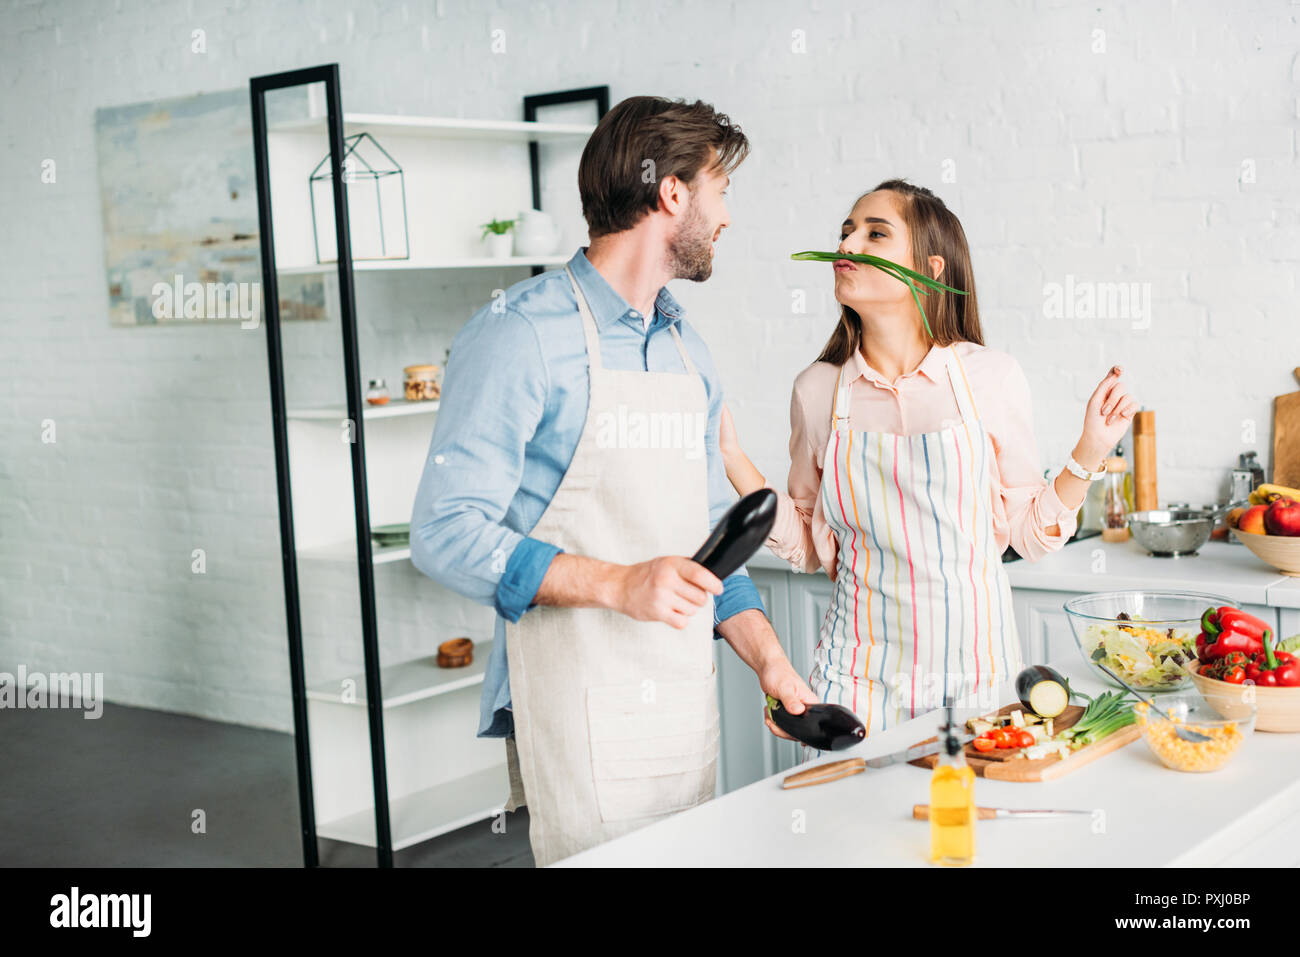 couple grimacing with vegetables while cooking in kitchen Stock Photo